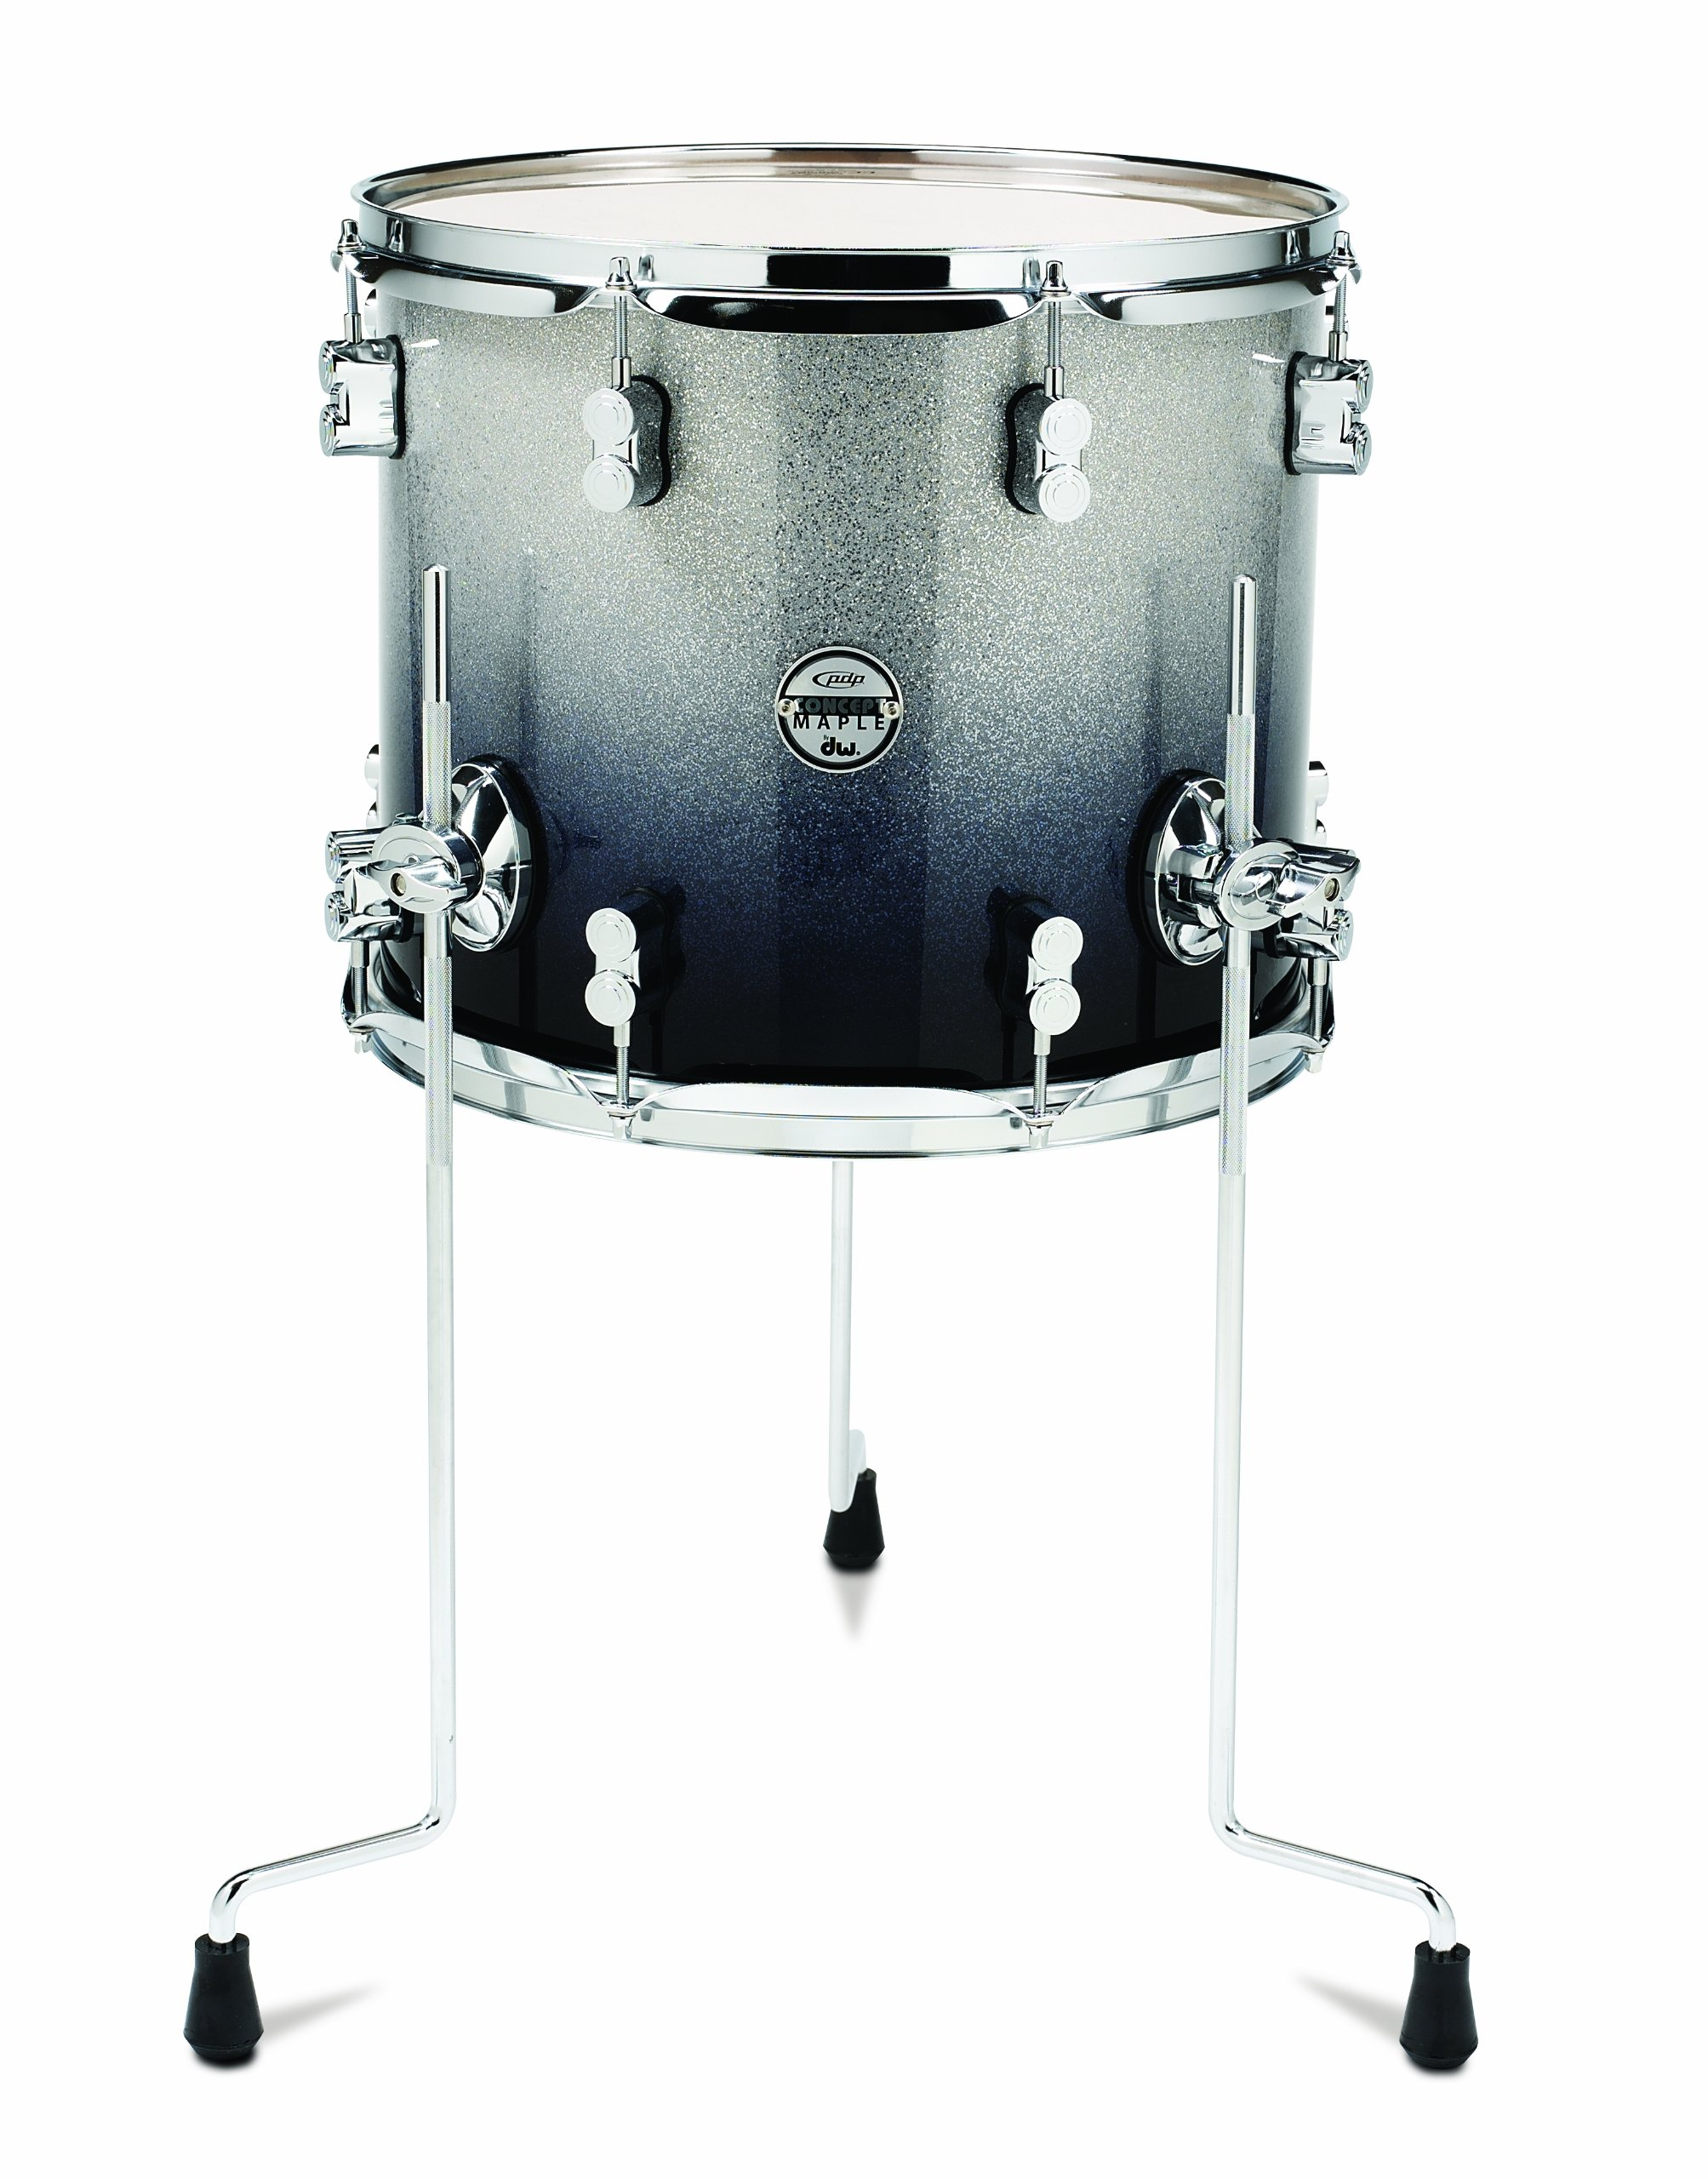 Pacific Drums PDCM1214TTSB 12 x 14 Inches Floor Tom with Chrome Hardware - Silver to Black Fade by Pacific Drums